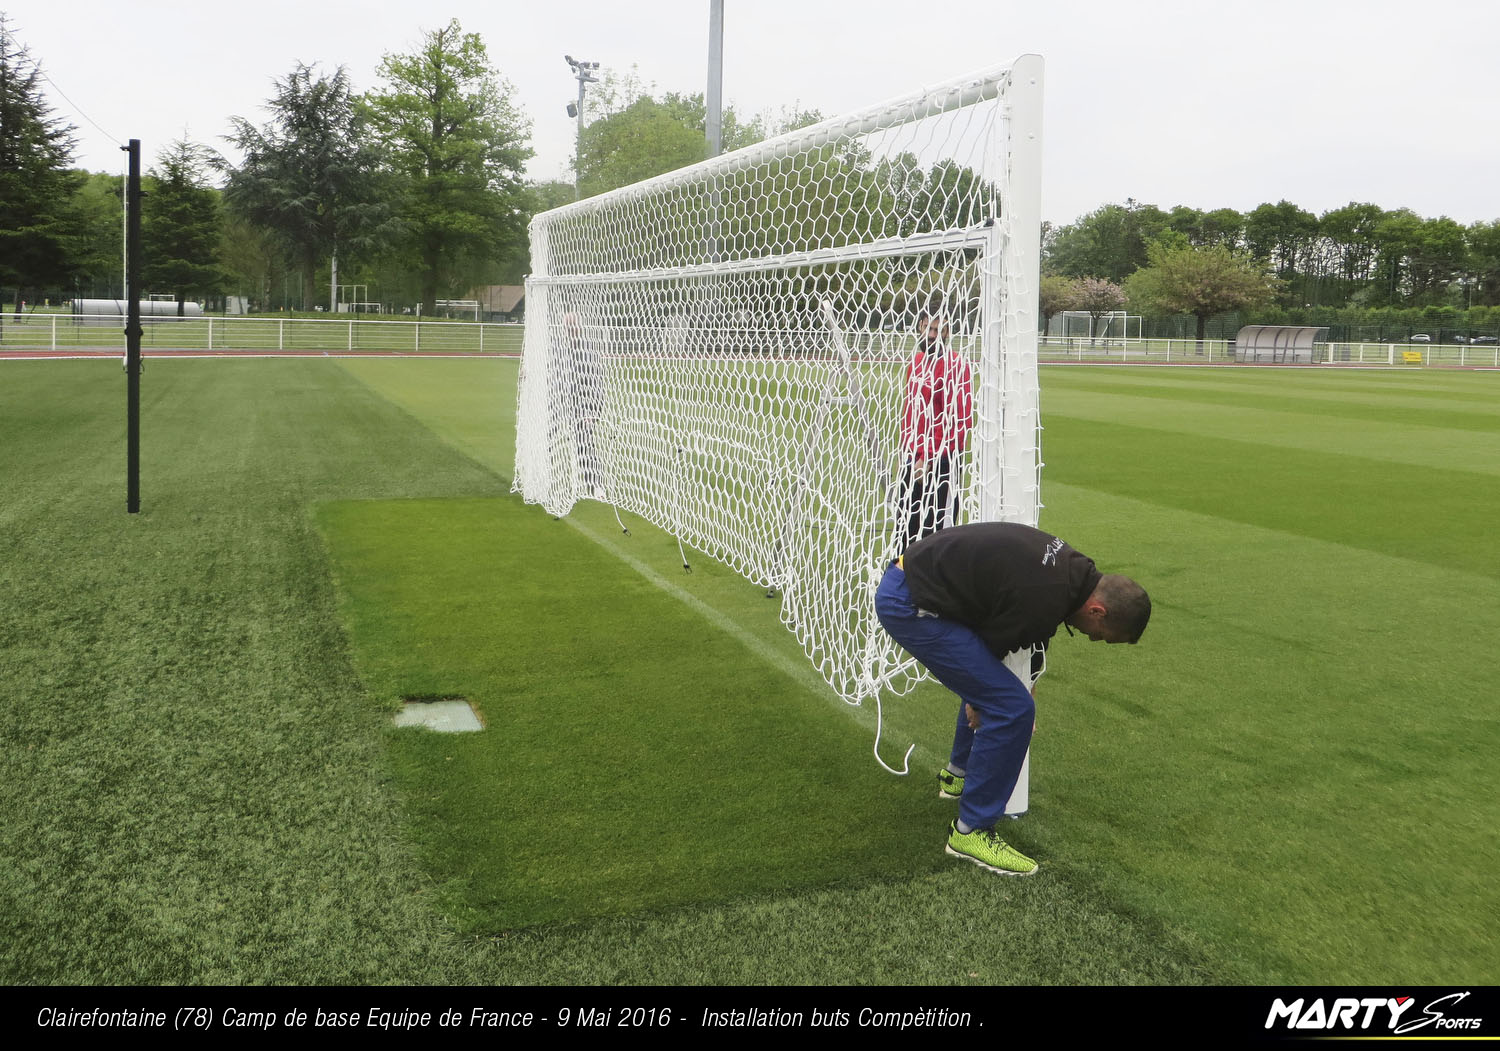 16_07273 © Eric POITOU / MARTY Sports. CLAIREFONTAINE - 78 - FRANCE . 9 Mai 2016. Installation du matériel MARTY Sports sur le camp de base de l'EURO 2016 à Clairefontaine.